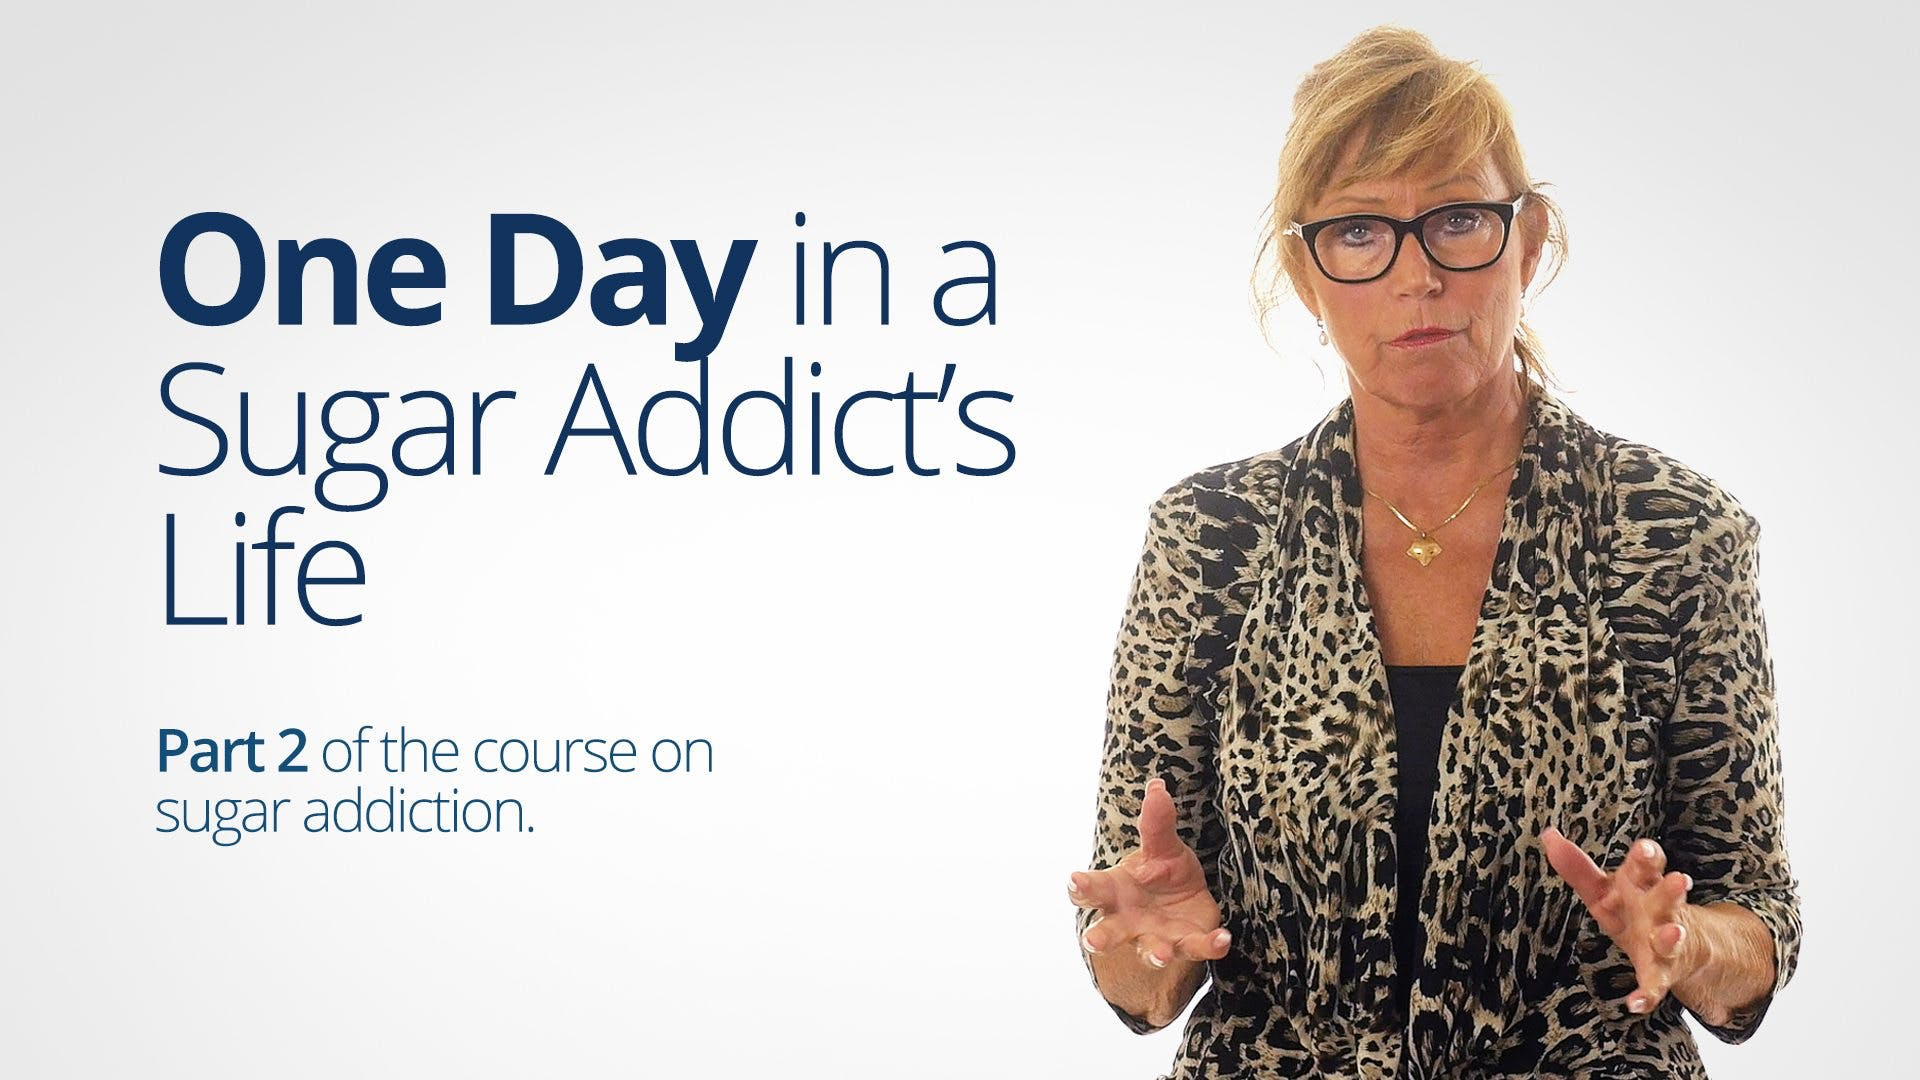 One Day in A Sugar Addict's Life – Bitten Jonsson